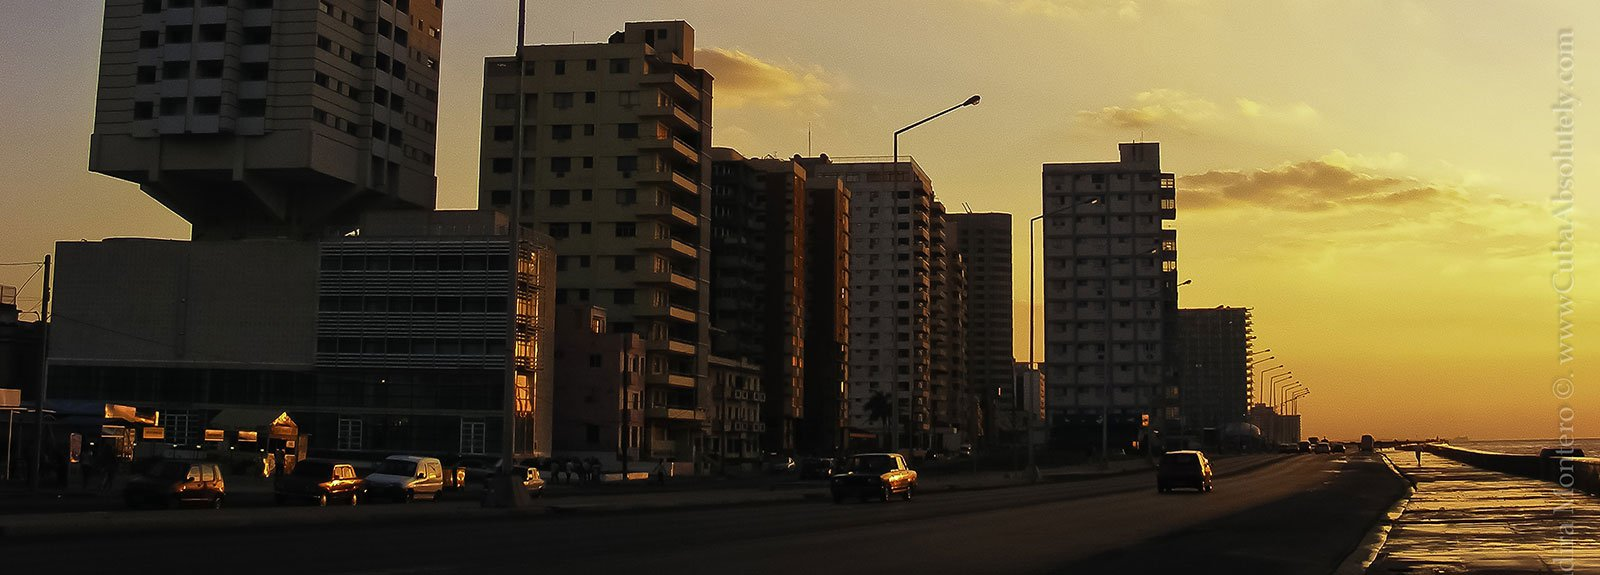 Buildings in front of seawall at sunset